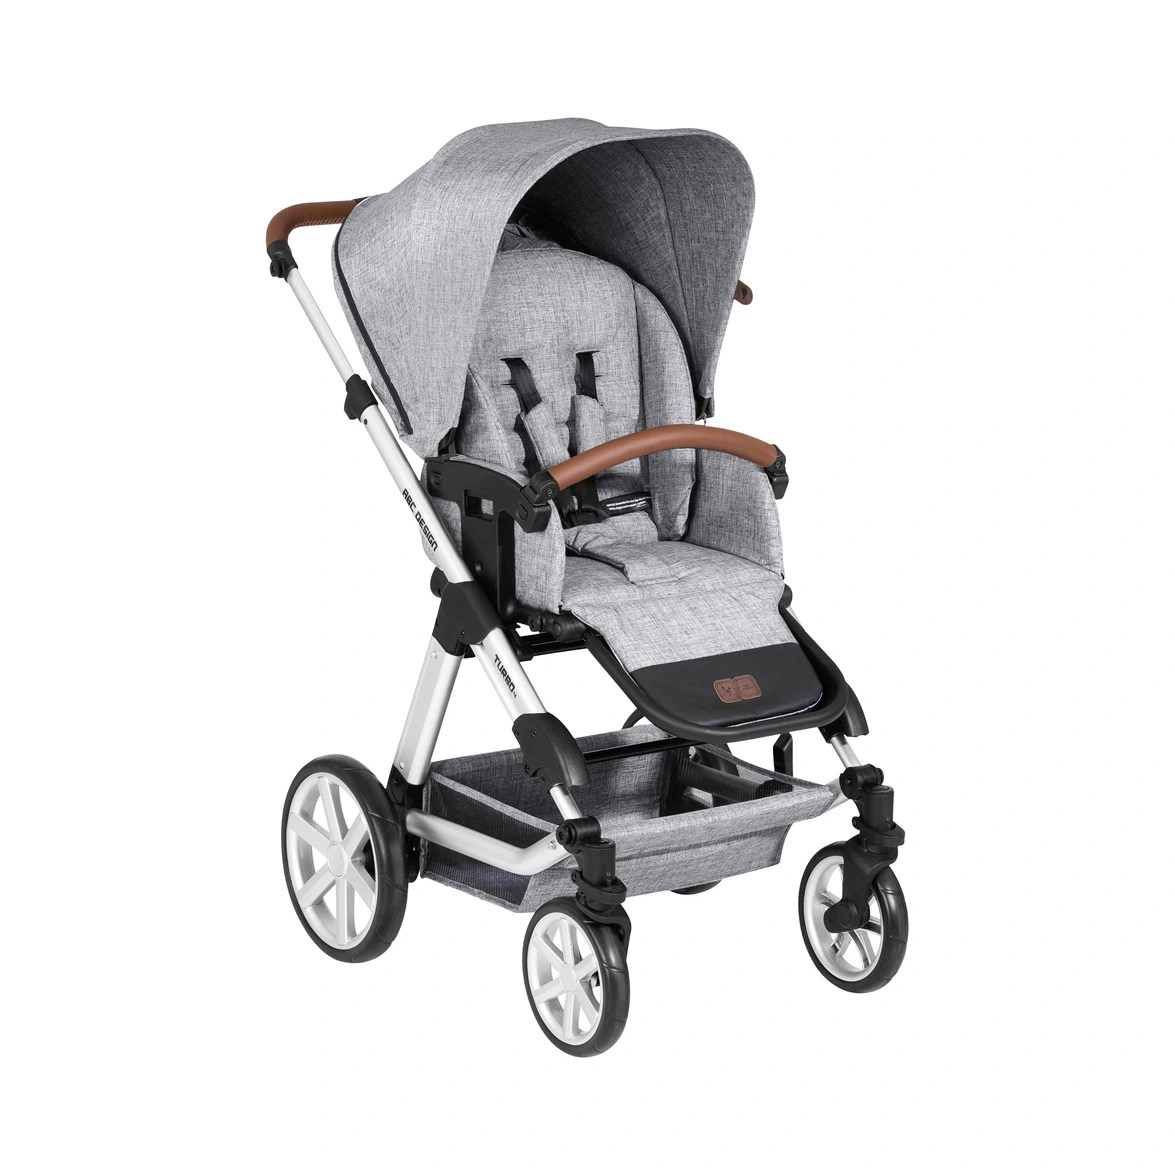 Abc Turbo 6 Graphite Grey Abc Design Turbo 4 Kombikinderwagen Online Kaufen Baby Walz